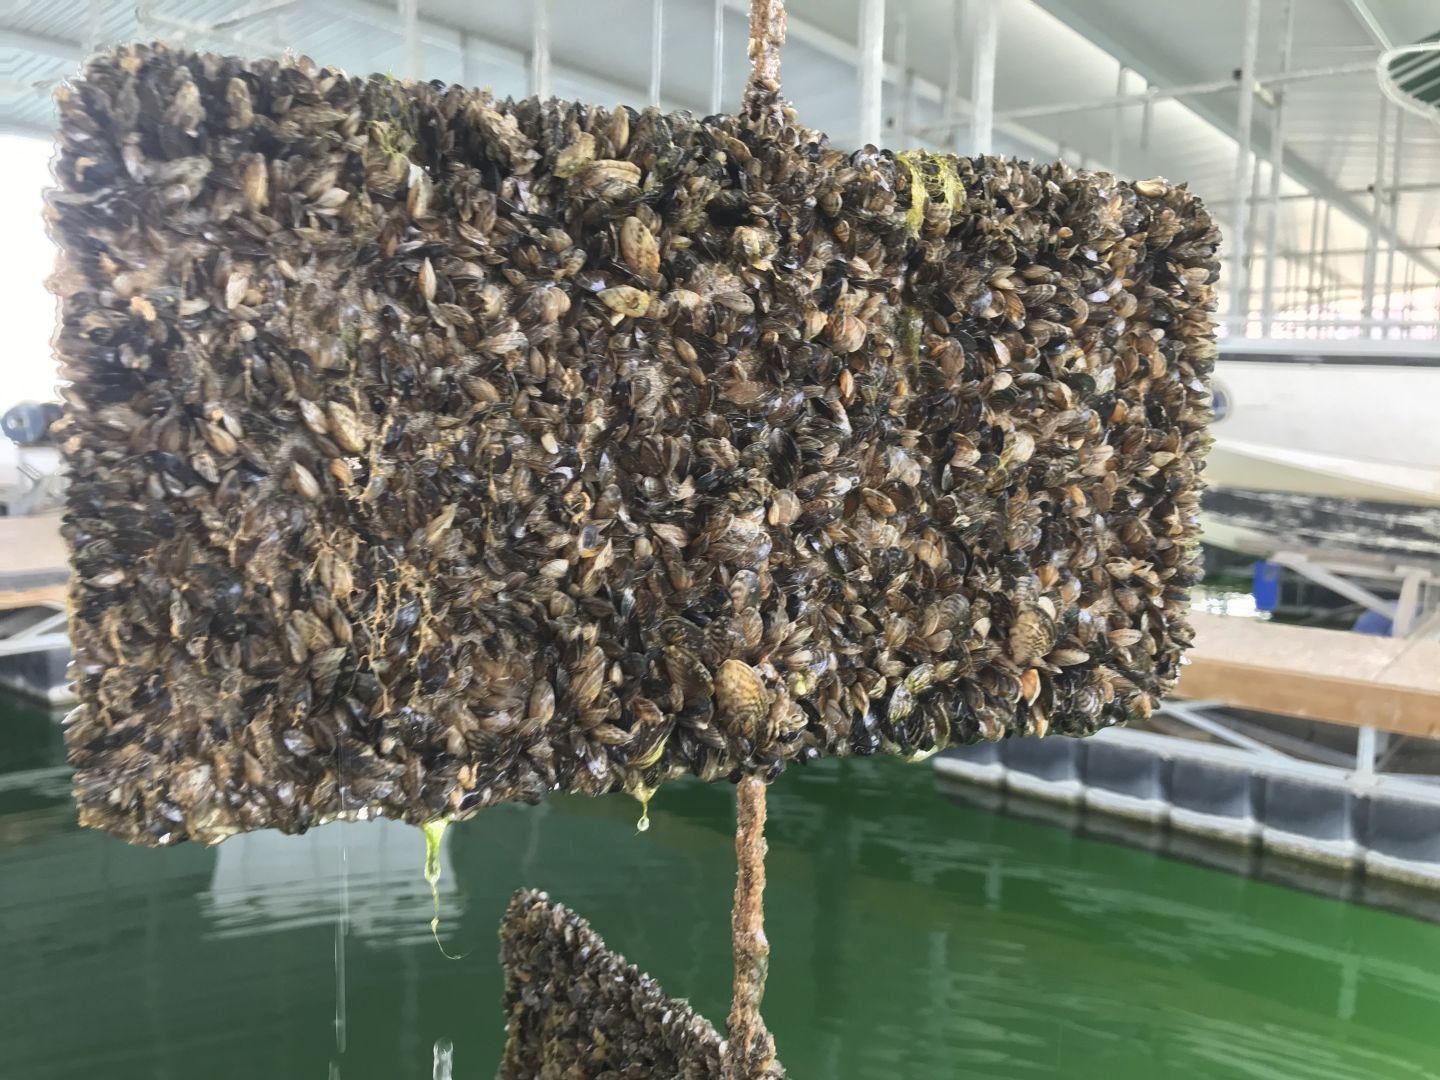 Zebra mussels coat entire surface of lake signage